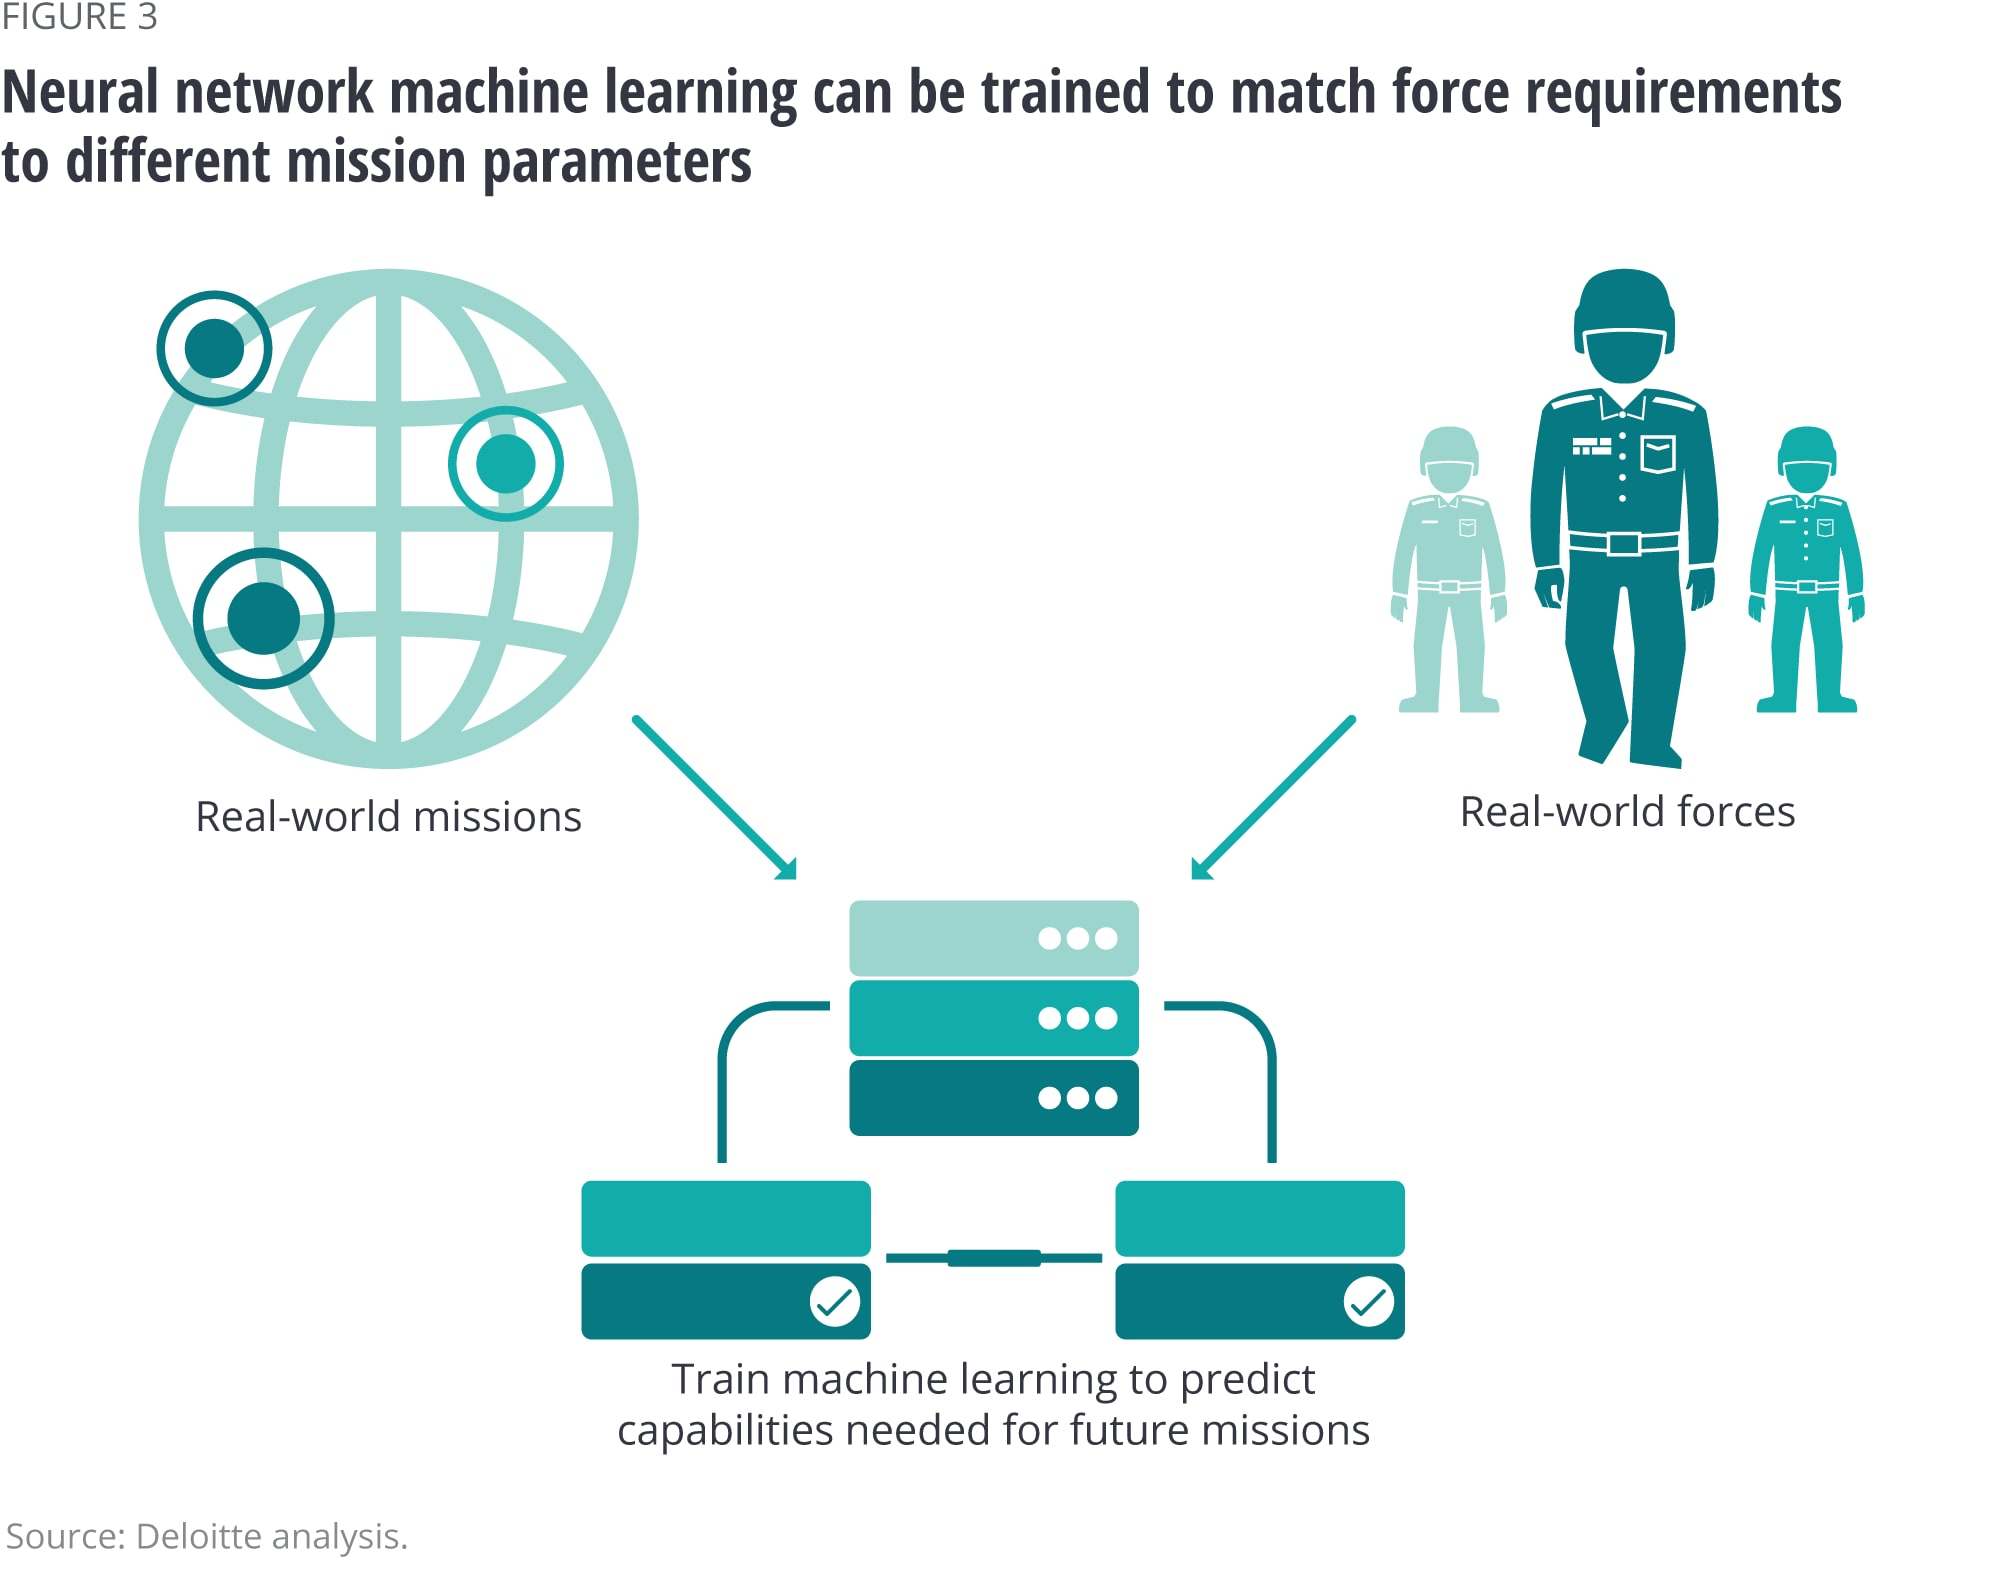 Neural network machine learning can be trained to match force requirements to different mission parameters.